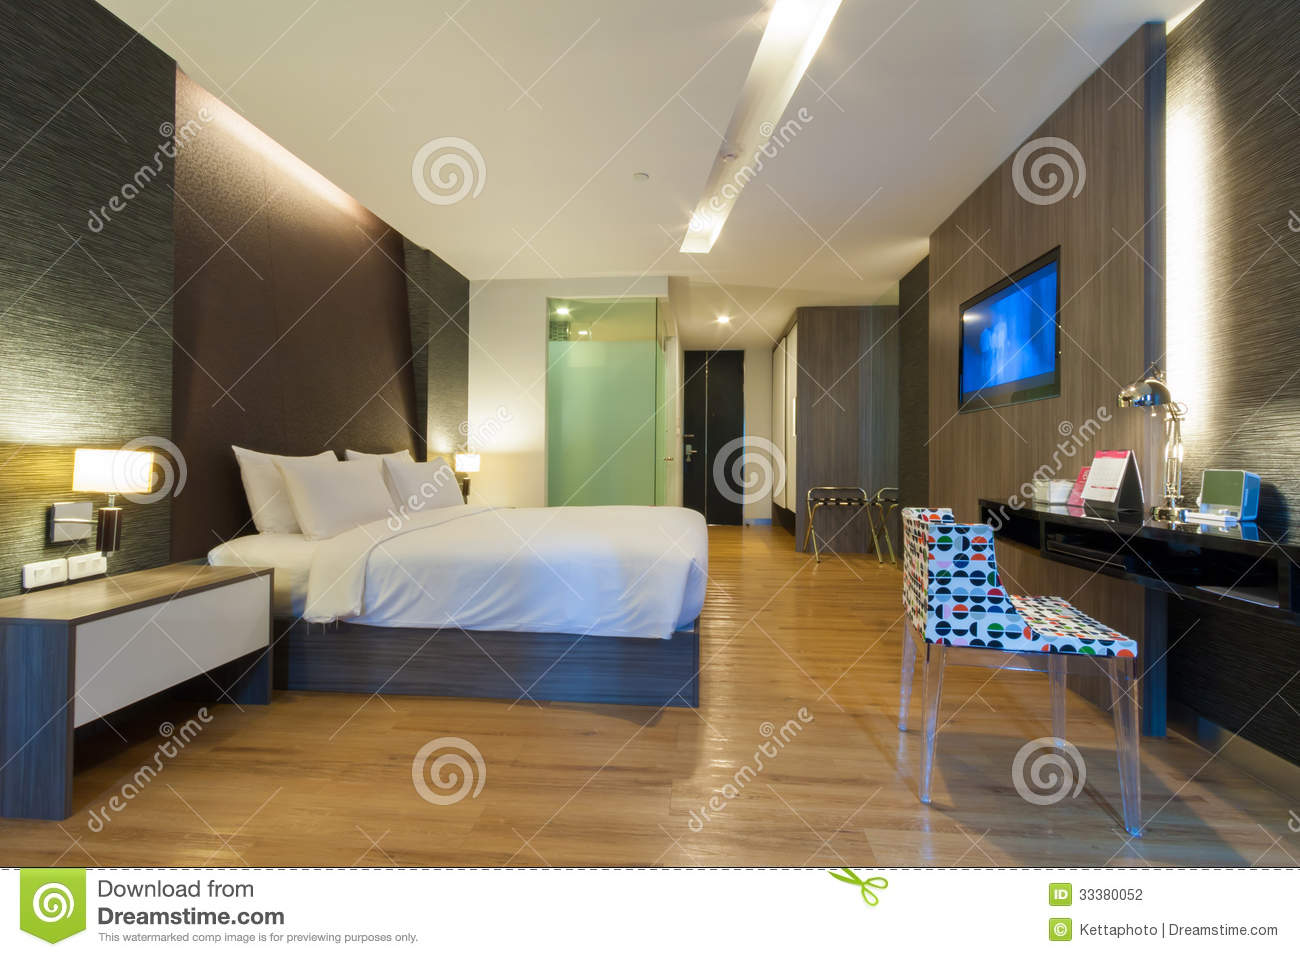 Luxury modern room in hotel with facilities bangkok thailand